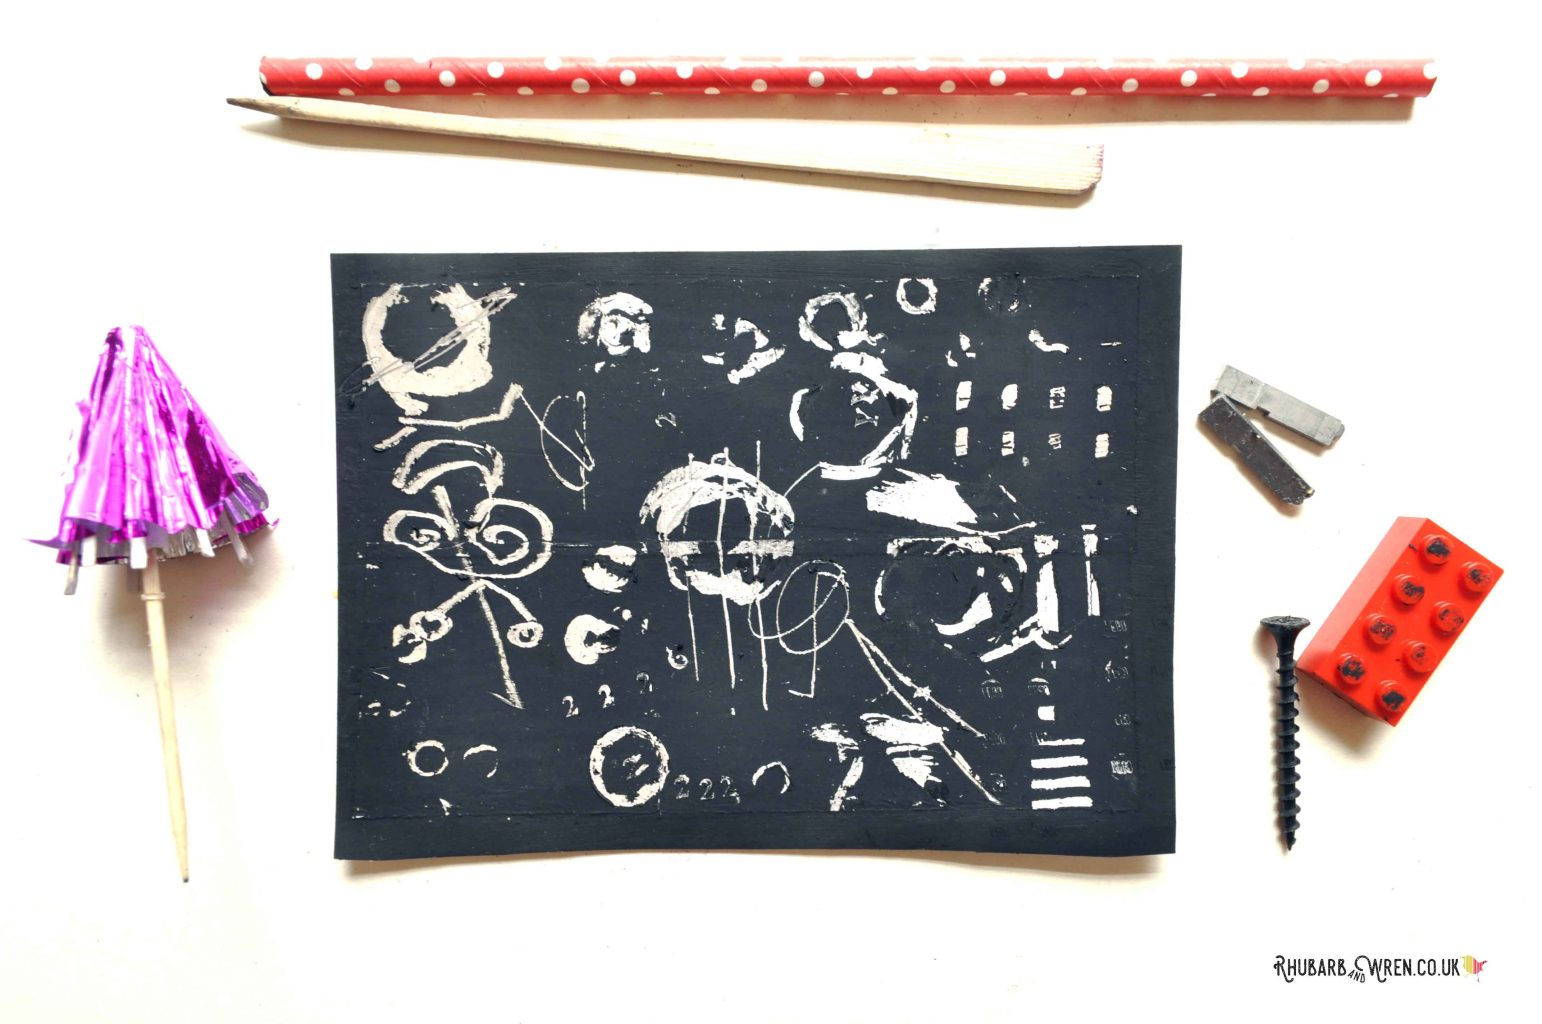 Household objects used as diy scratch art tools